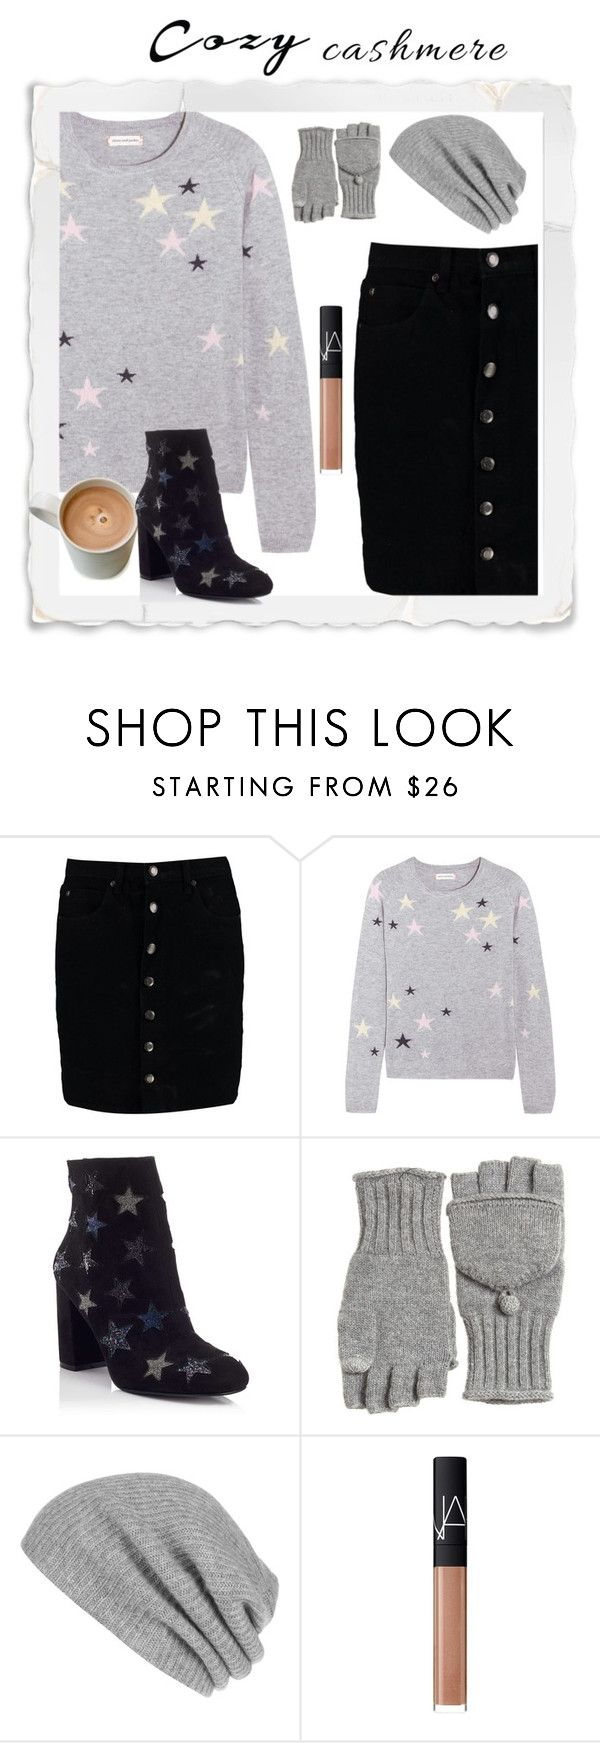 """""""cozy cashmere"""" by zeepanda ❤ liked on Polyvore featuring Boohoo, Chinti and Parker, Miss Selfridge, Calypso St. Barth, White + Warren and NARS Cosmetics"""